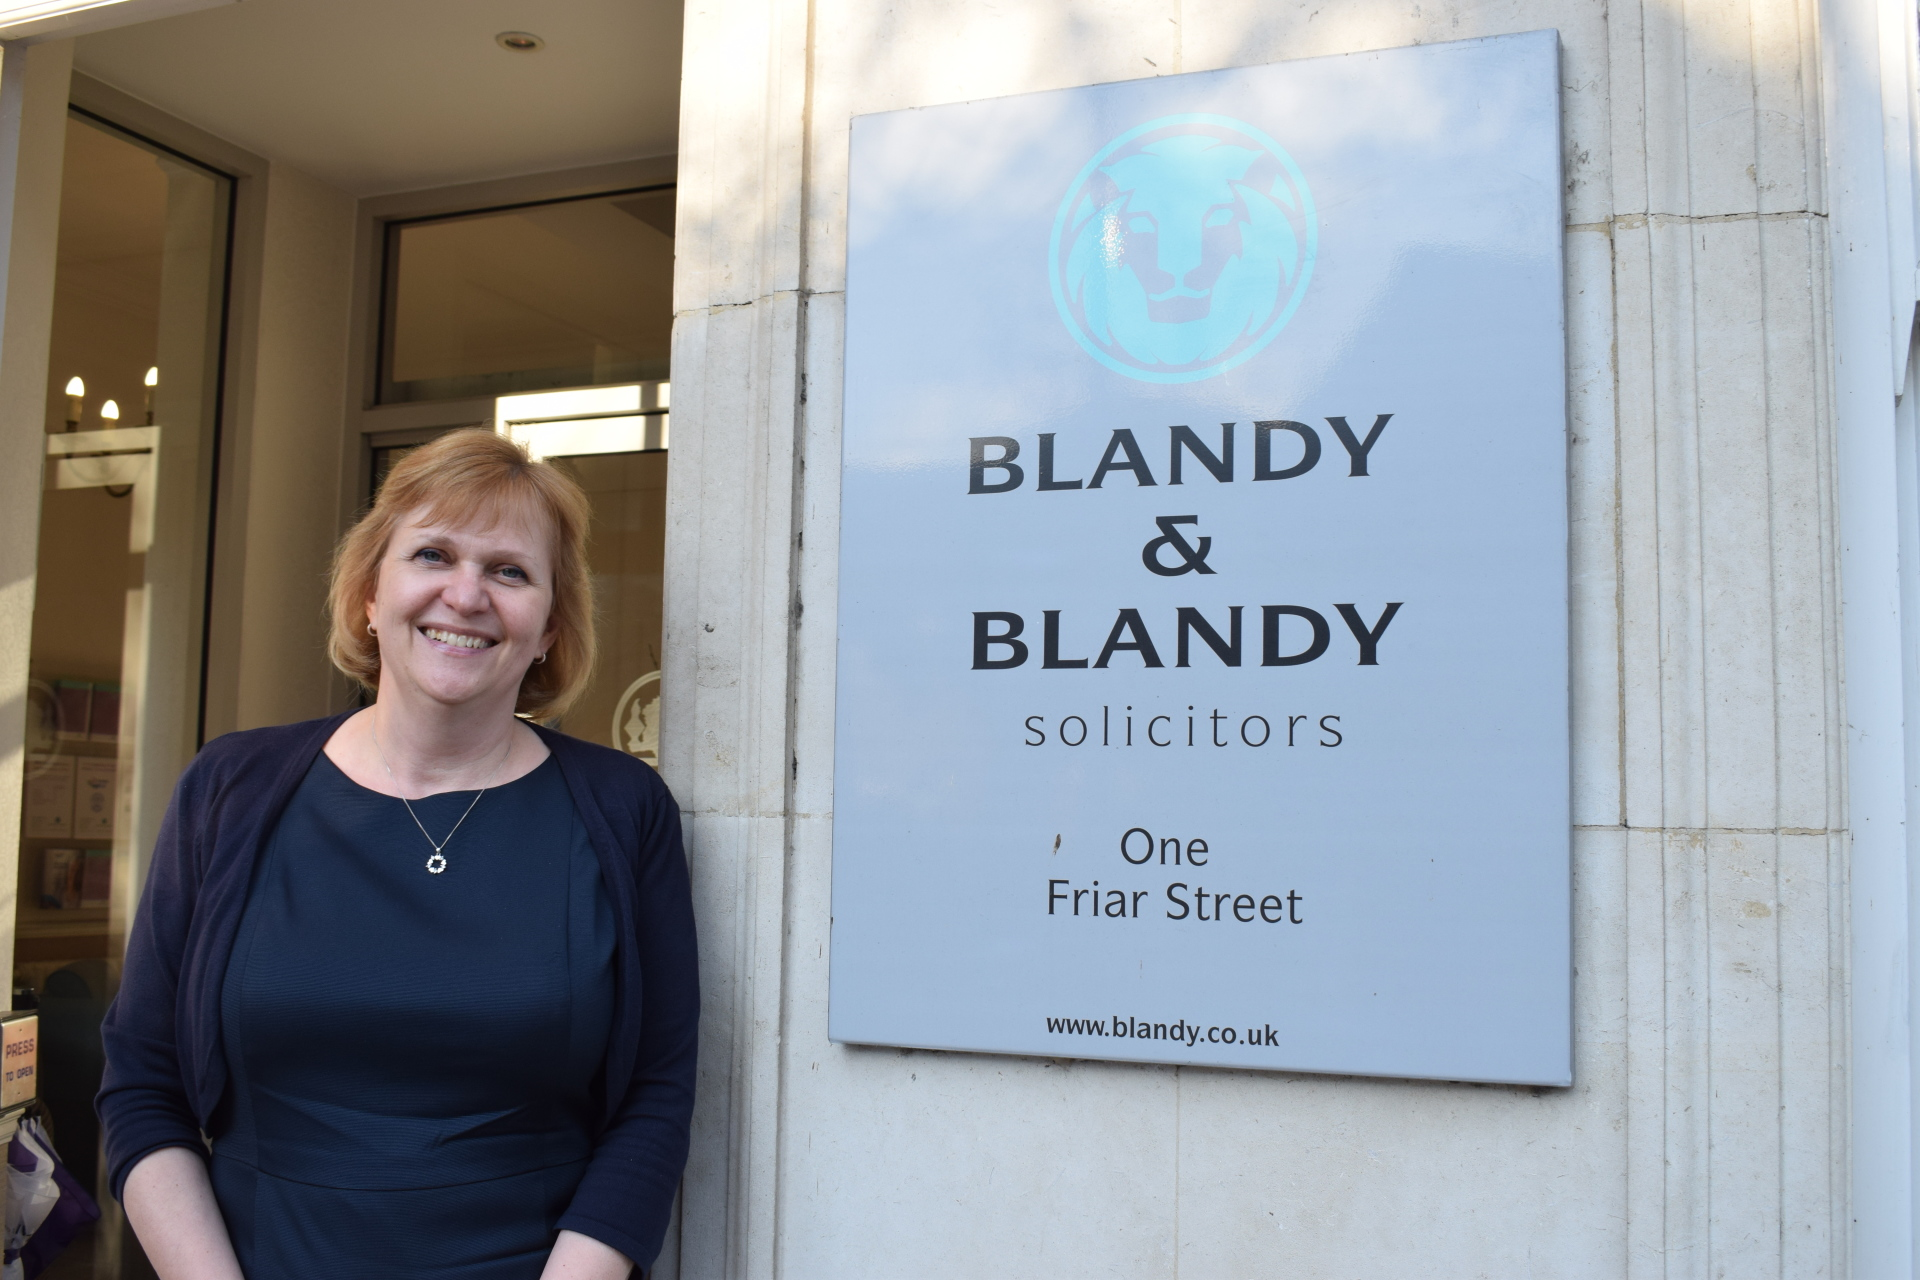 The new Blandys website - and the thinking behind it